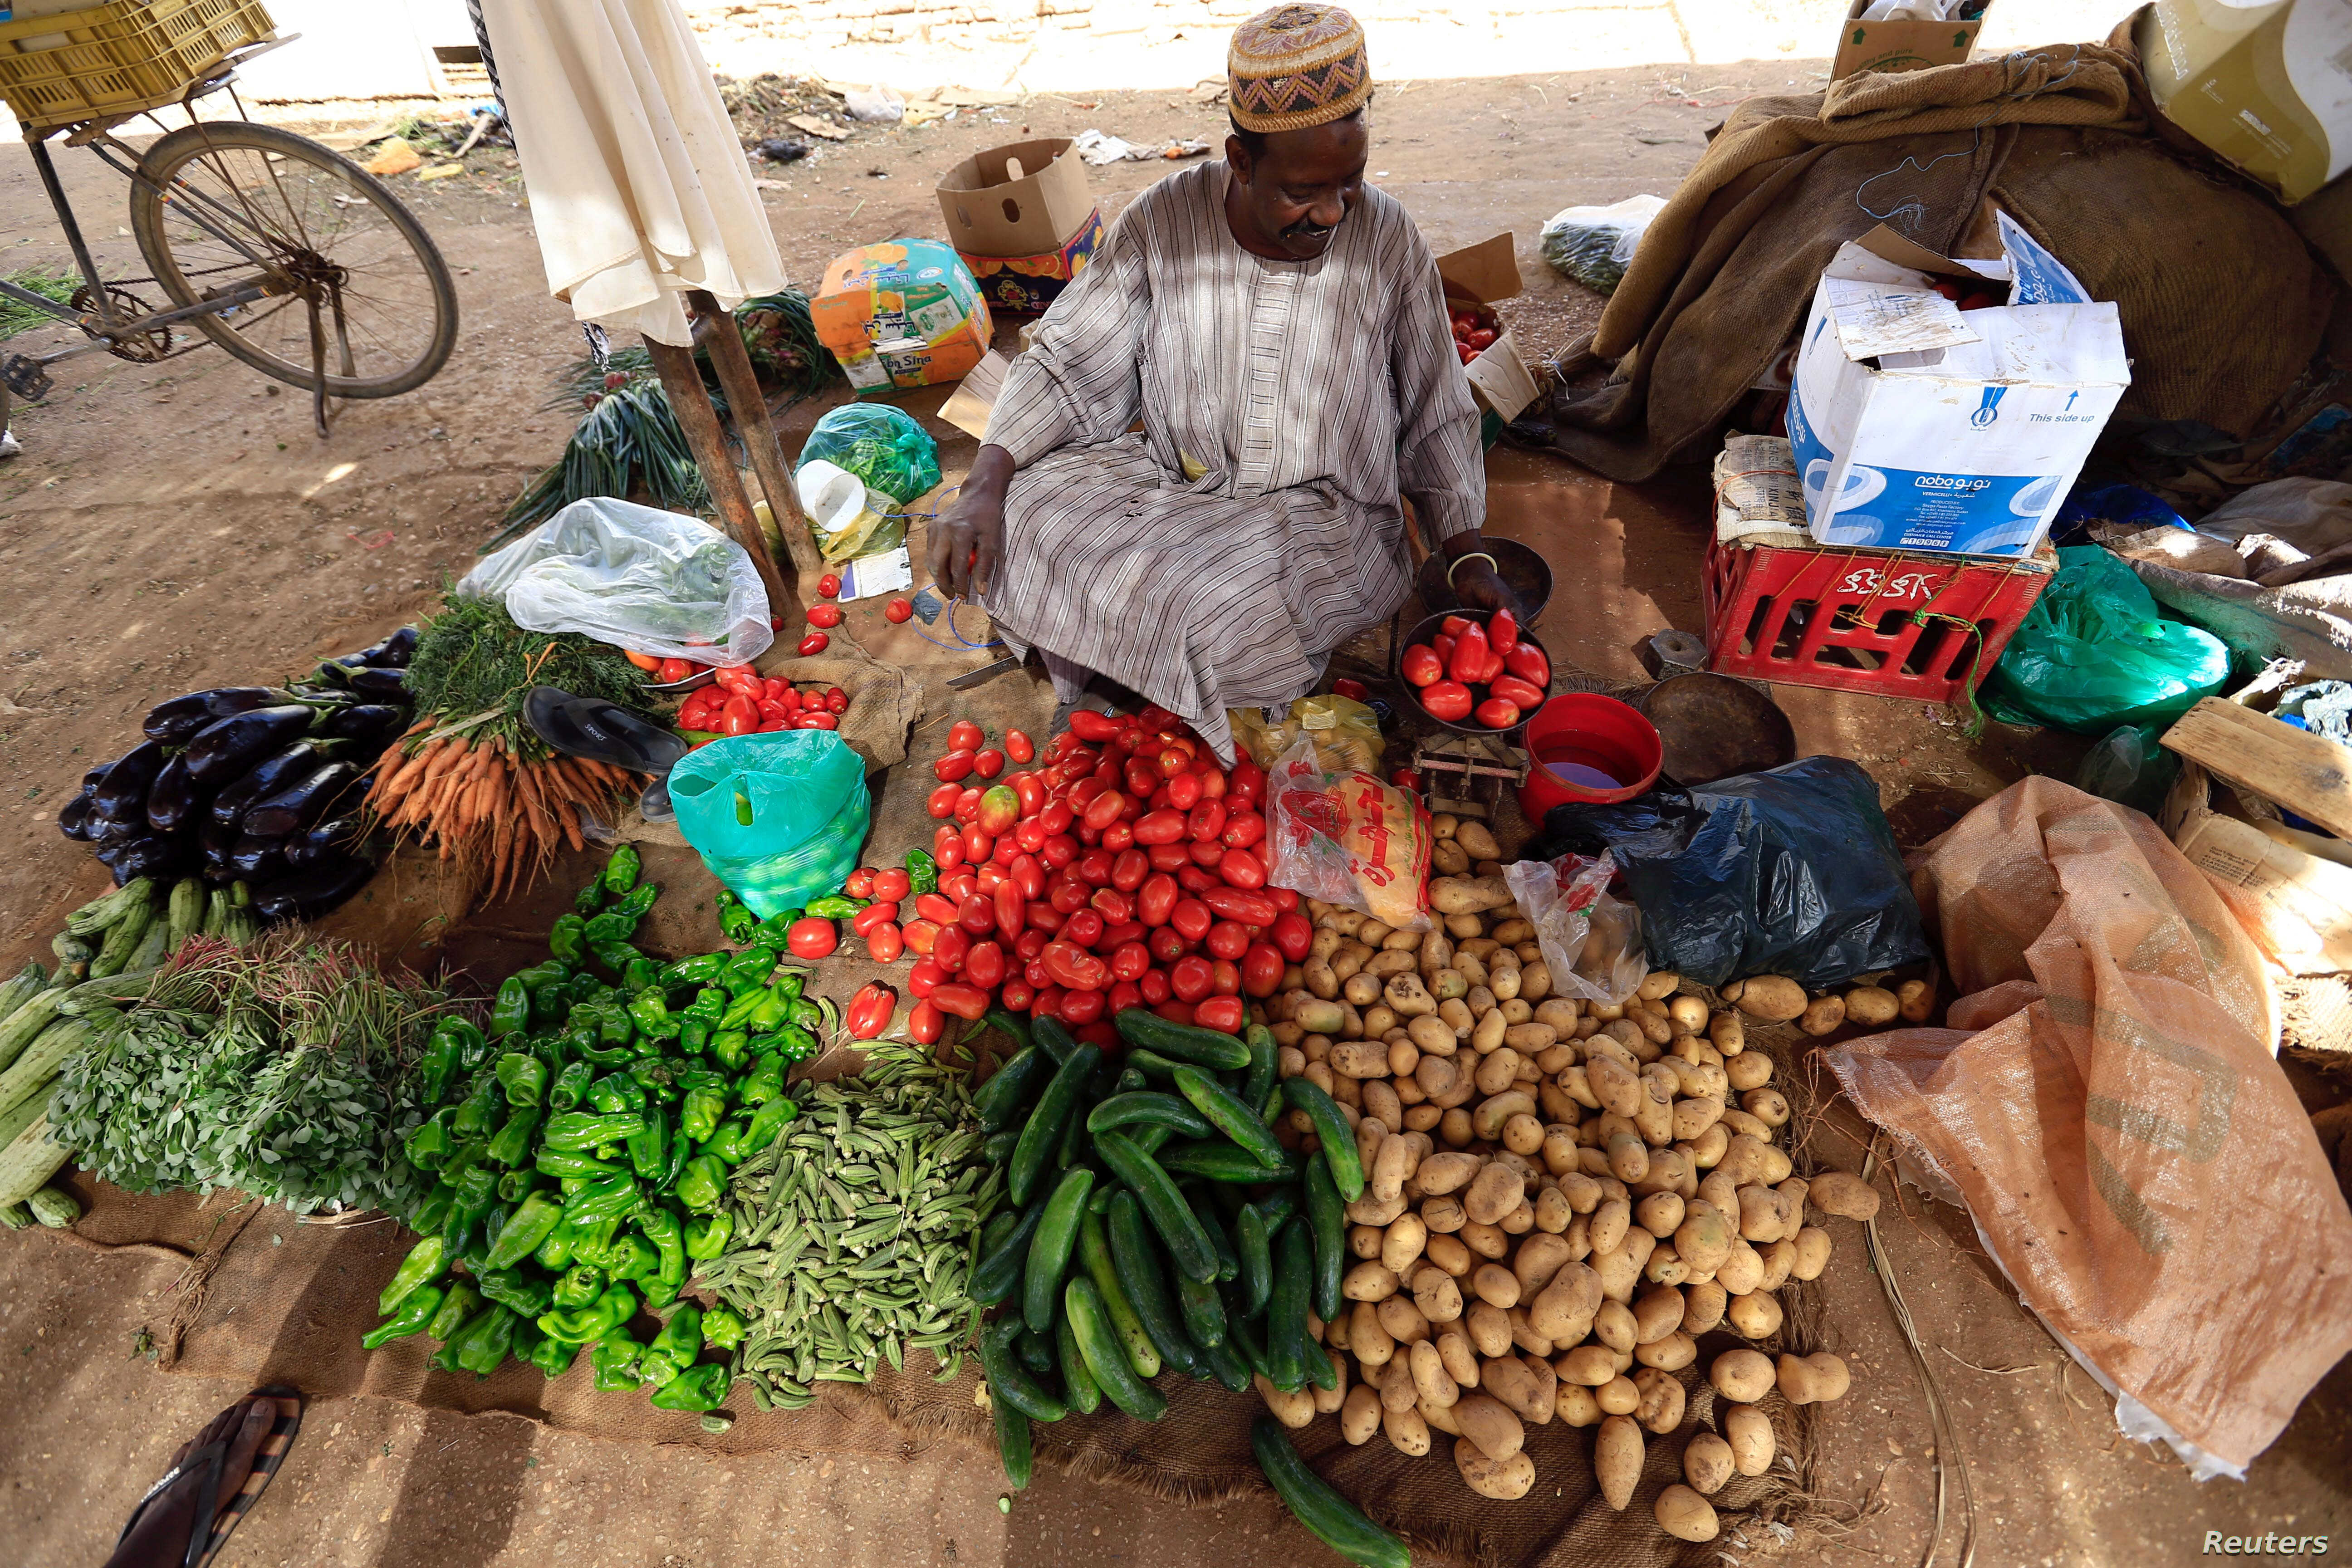 A street vendor waits for customers in Khartoum, Sudan Dec. 2, 2016. If African countries want to be able to feed a quickly increasing population, leaders need to start planning now, according to a report in the Proceedings of the National Academy of